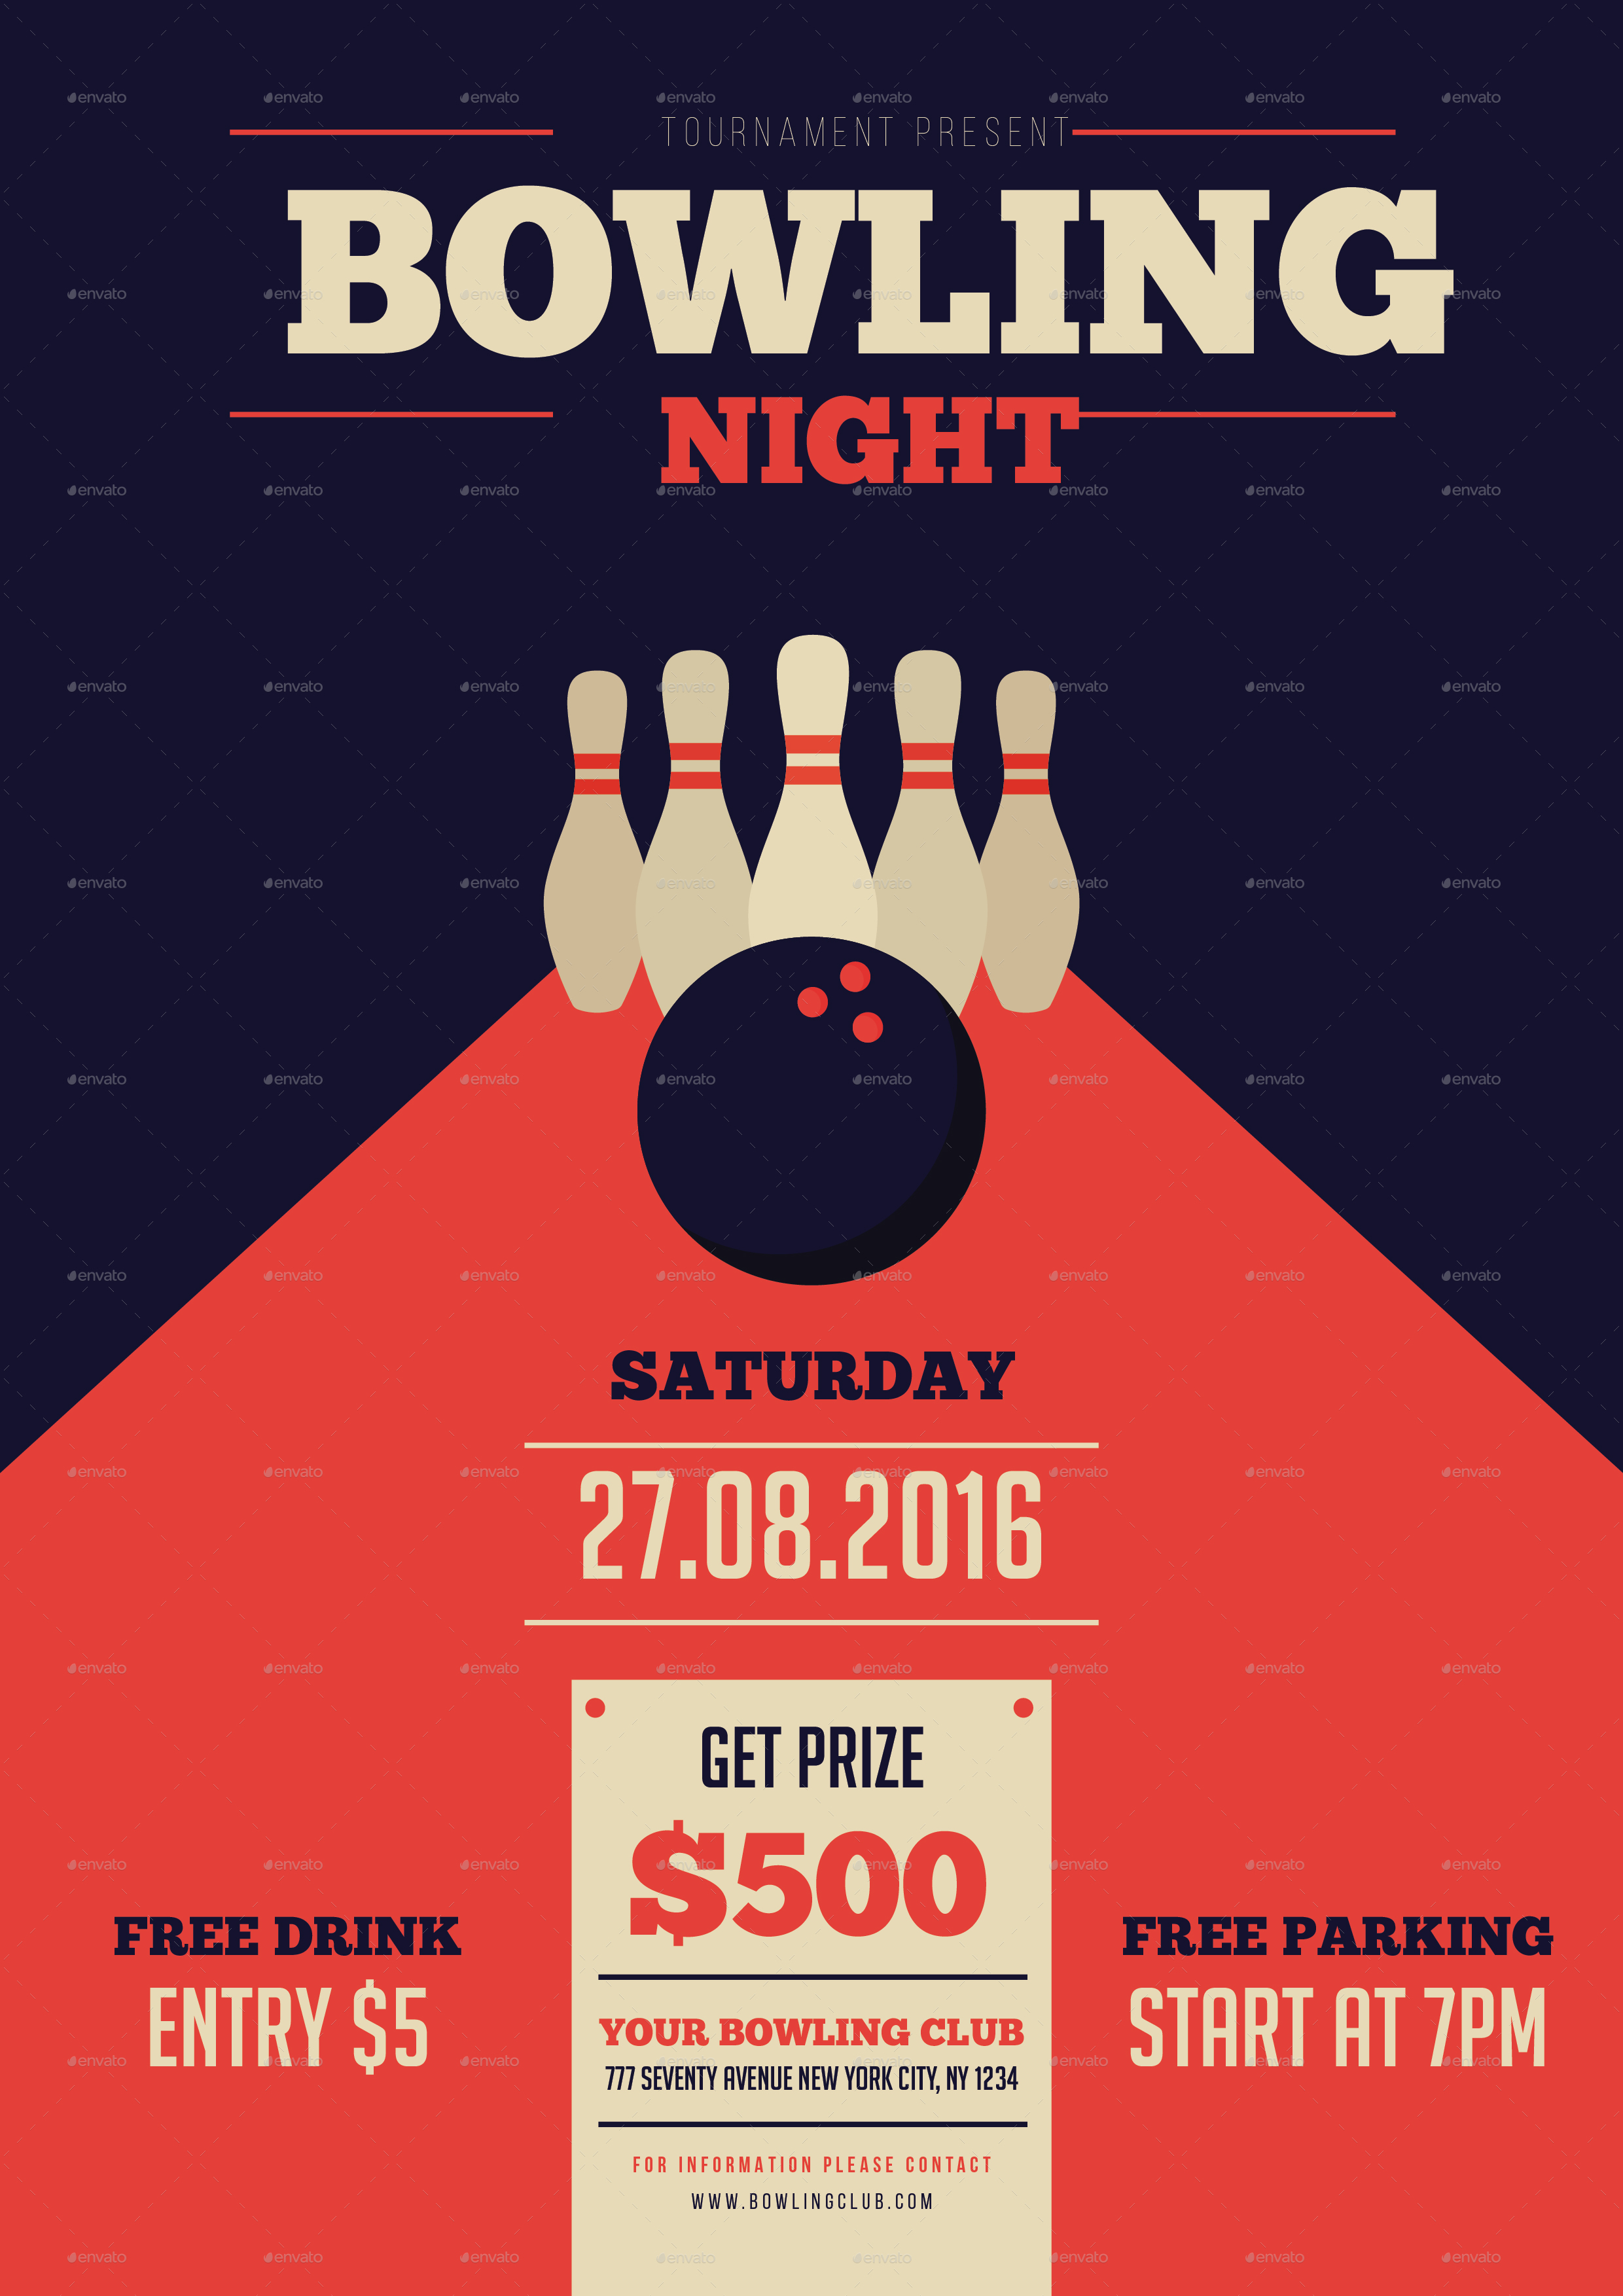 Bowling Night Flyer by mingming – Bowling Flyer Template